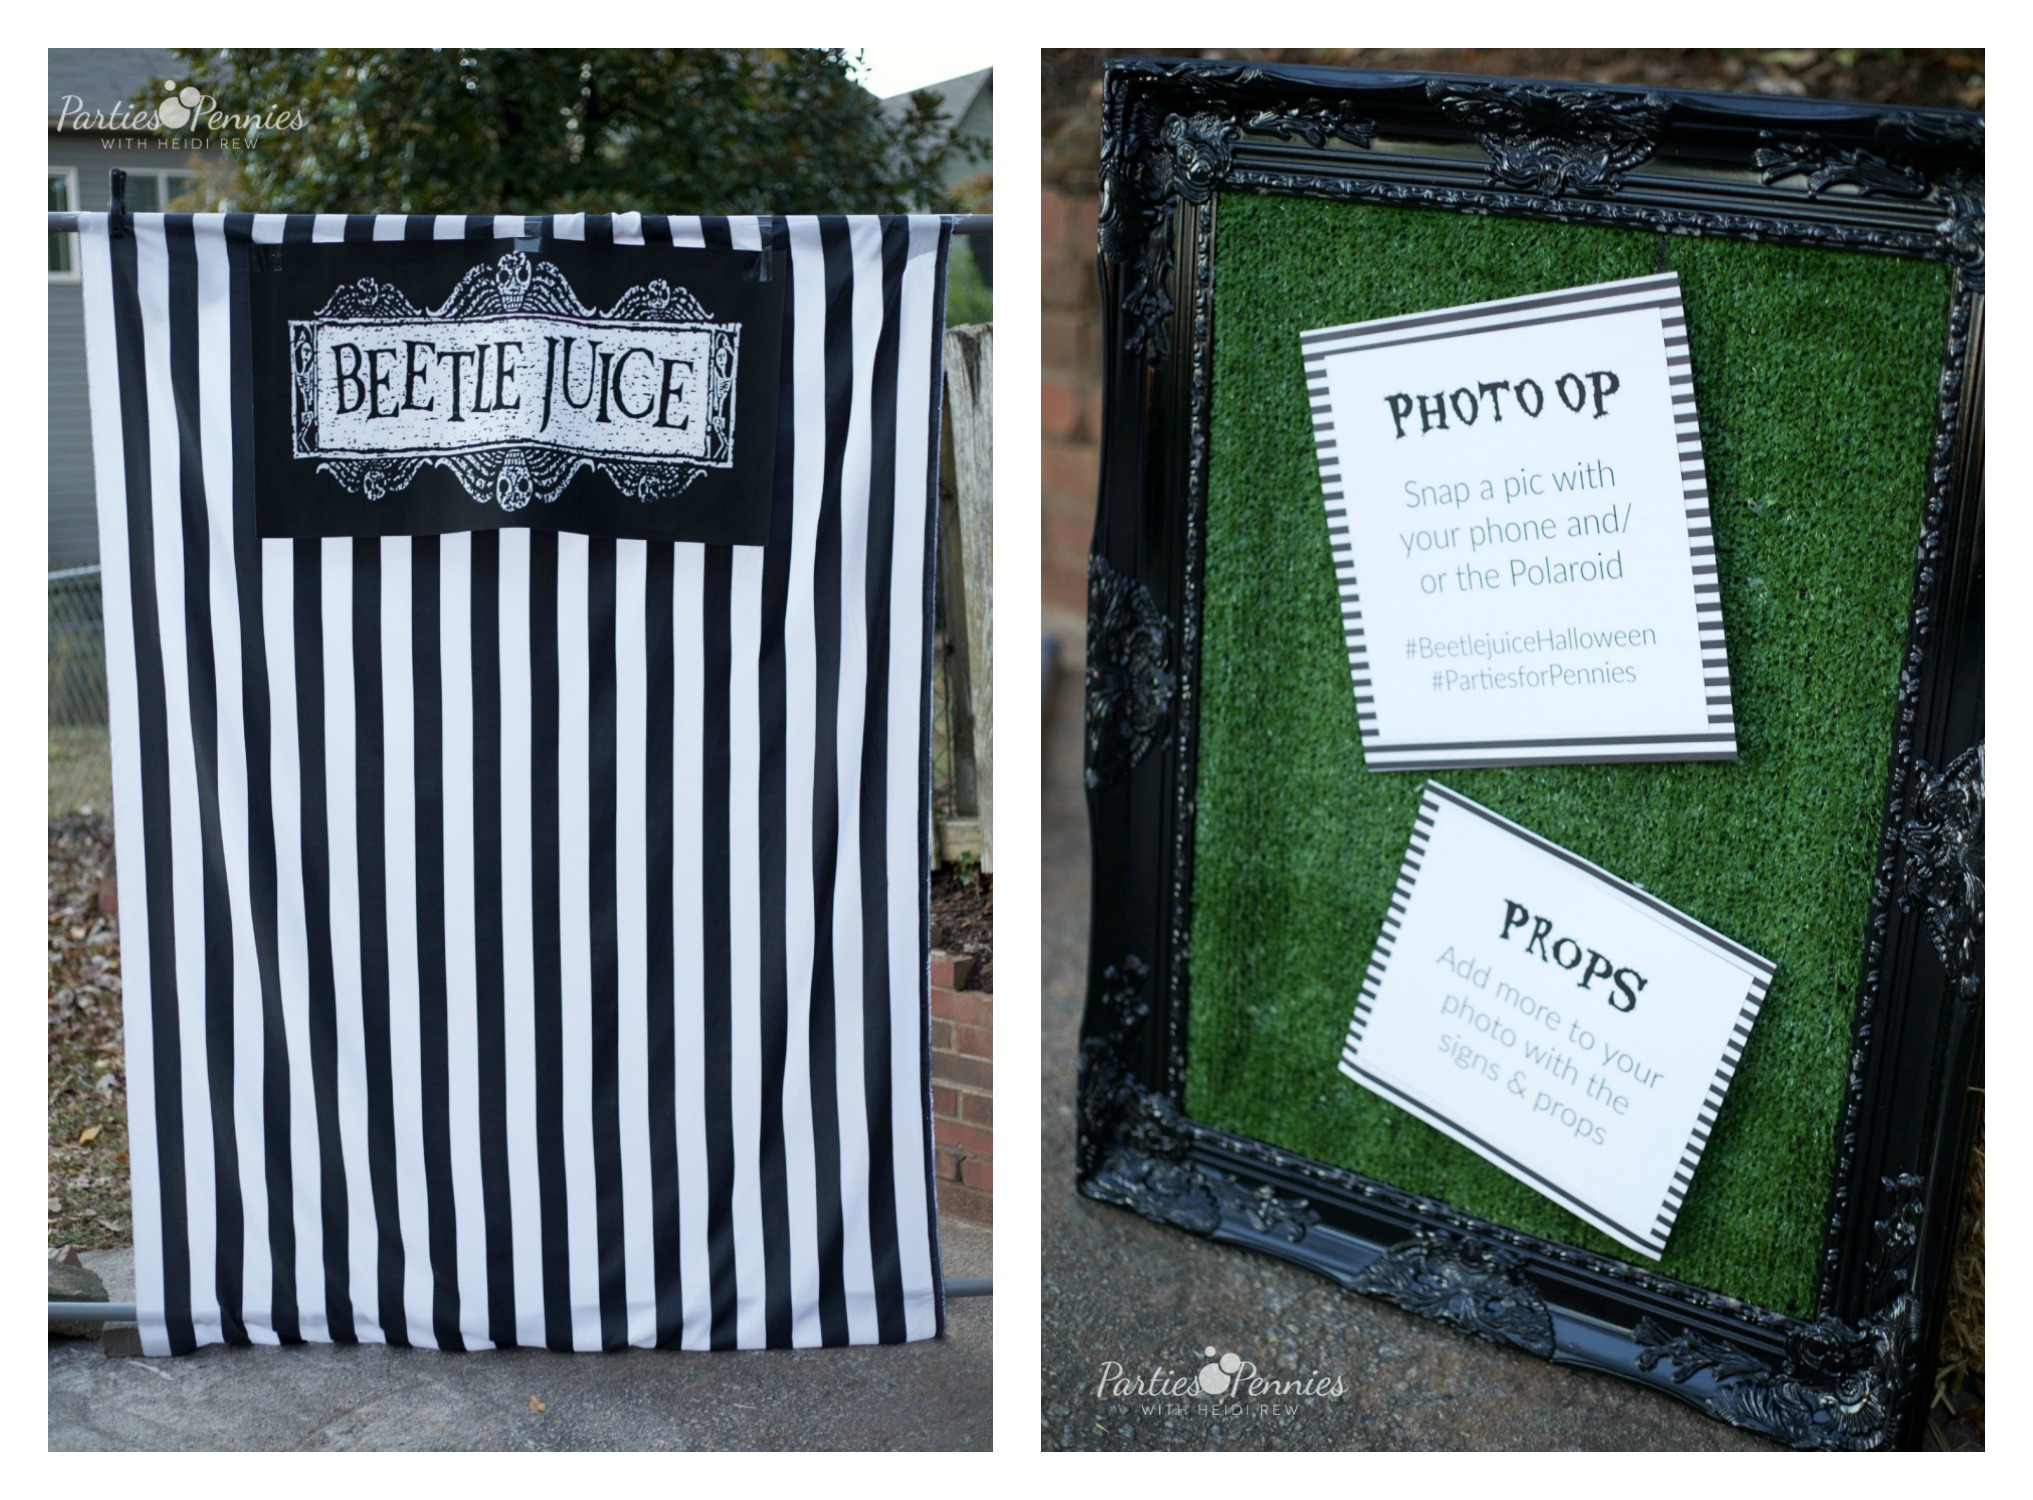 Beetlejuice Halloween Party | PartiesforPennies.com | DIY Photo Backdrop